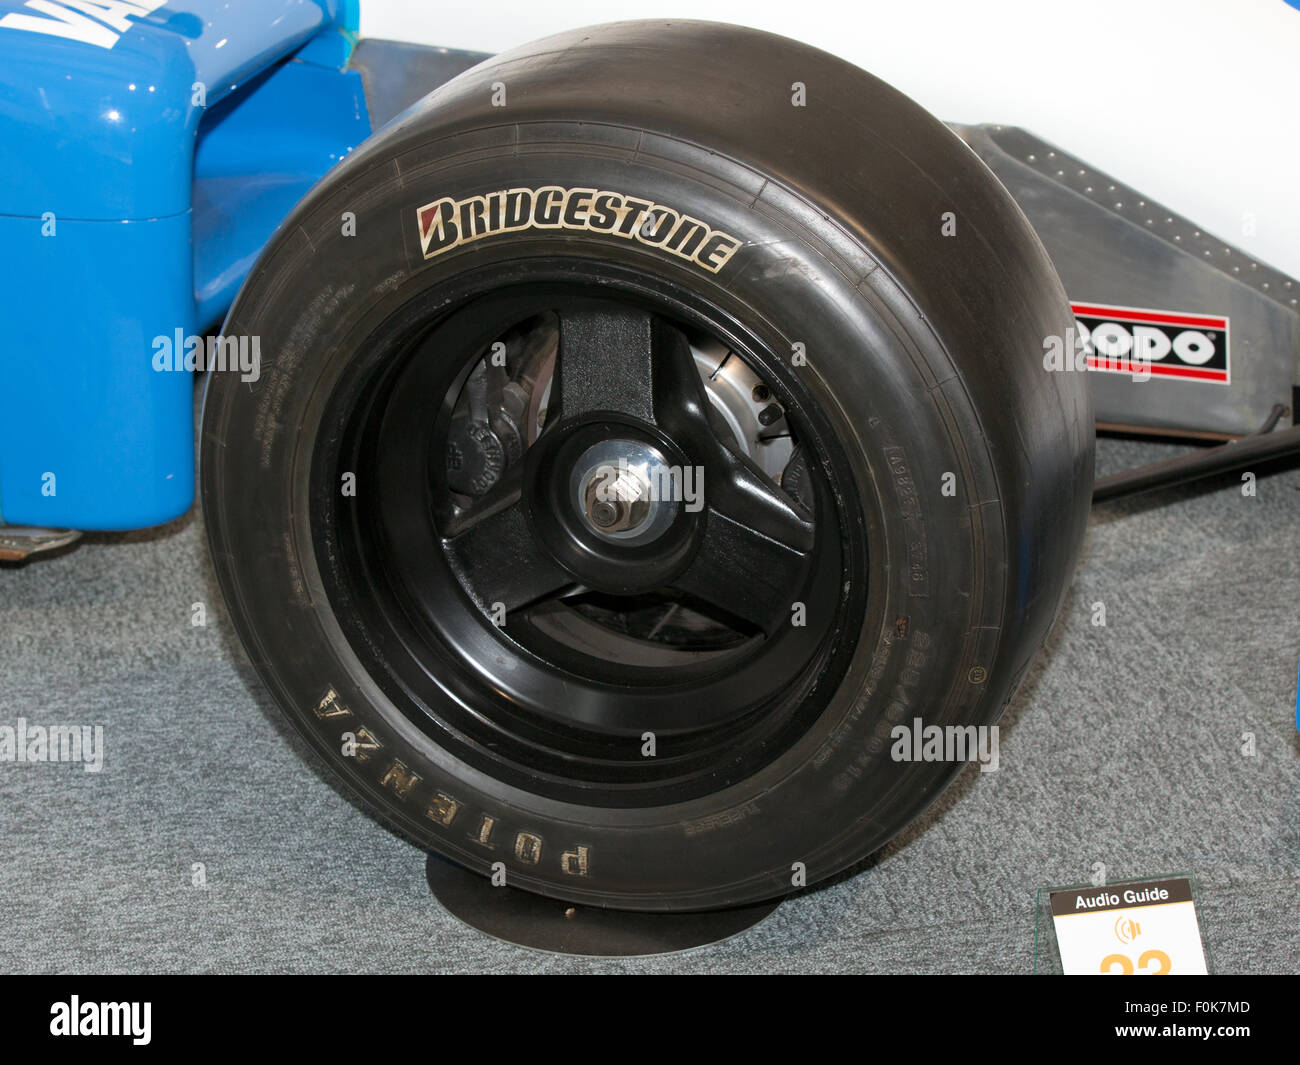 Ralt RH6-84 front-right tyre 2015 Honda Collection Hall - Stock Image